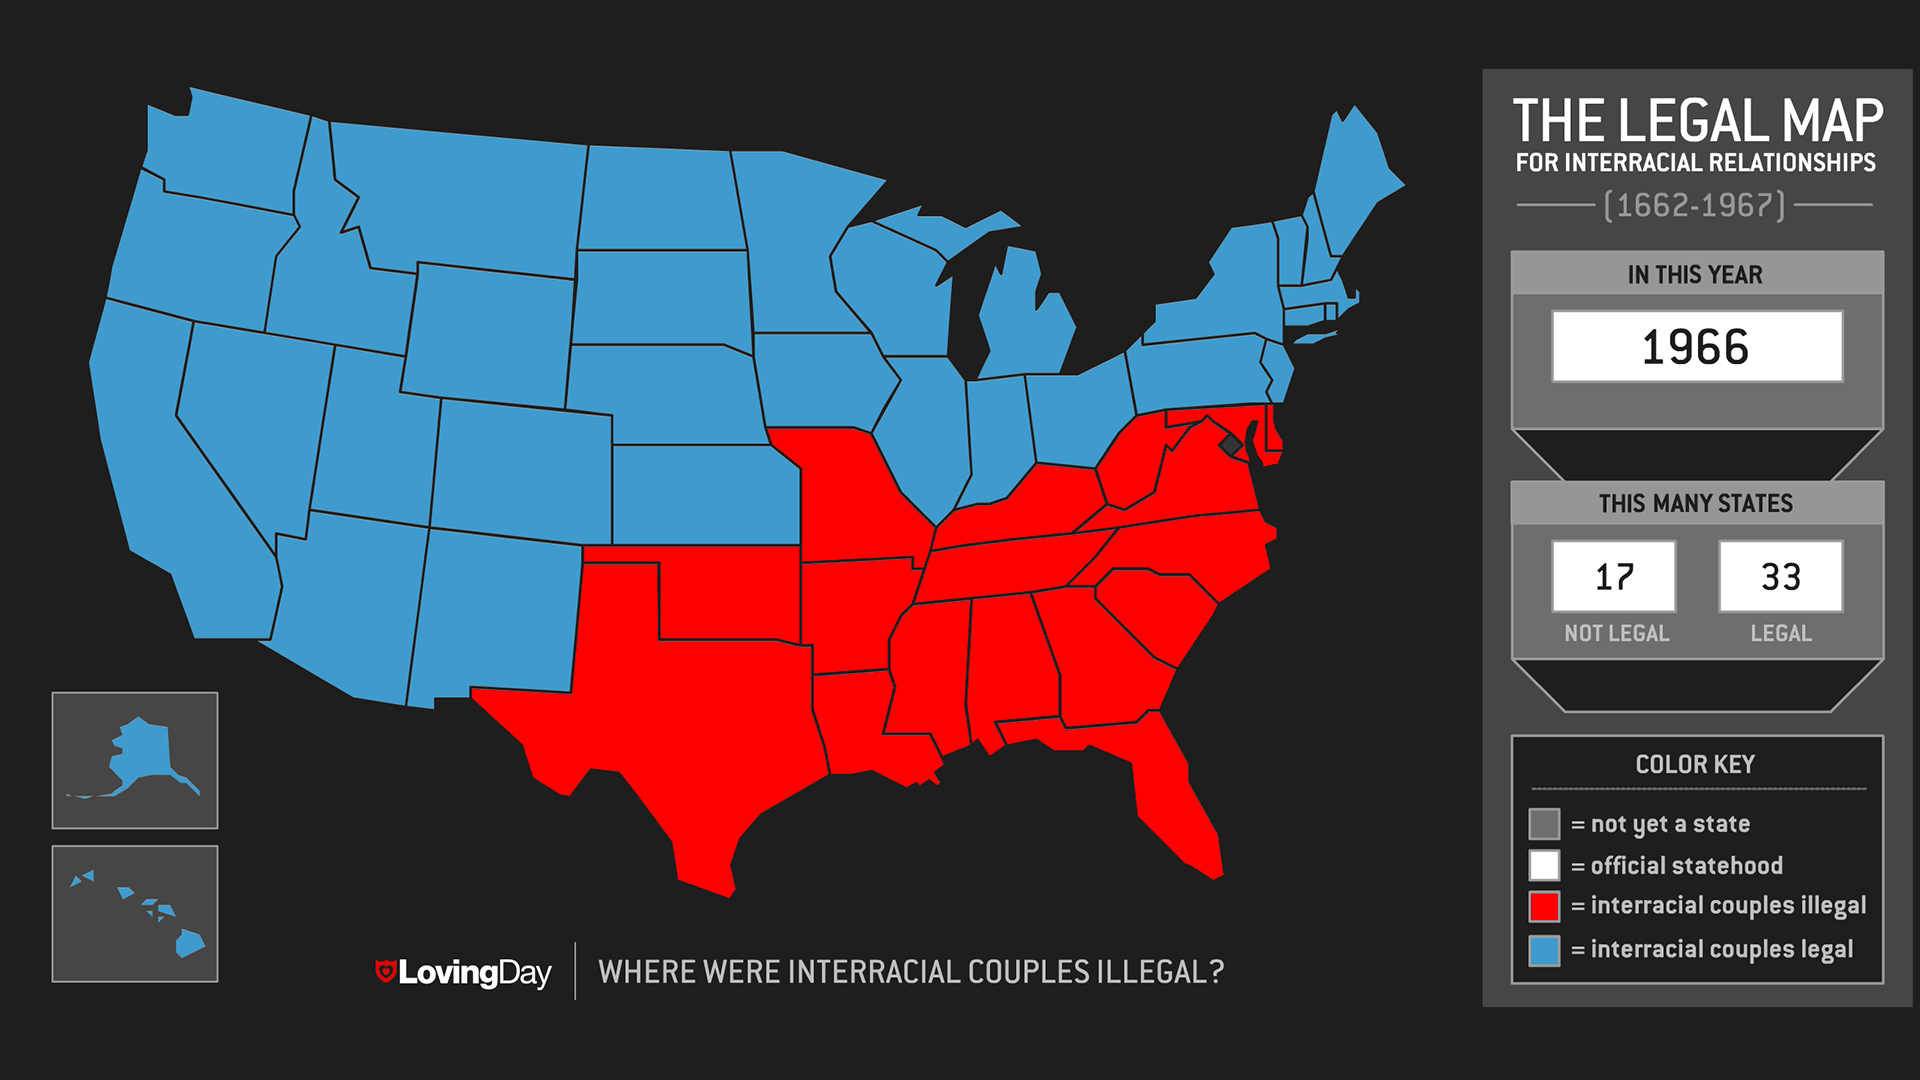 Loving Day: where were interracial couples illegal? The Legal Map for interracial relationships (1662-1967). In this year: 196. This many states: 17 not legal, 33 legal. Interracial couples are illegal mostly in the southeast, from Delaware to Texas.